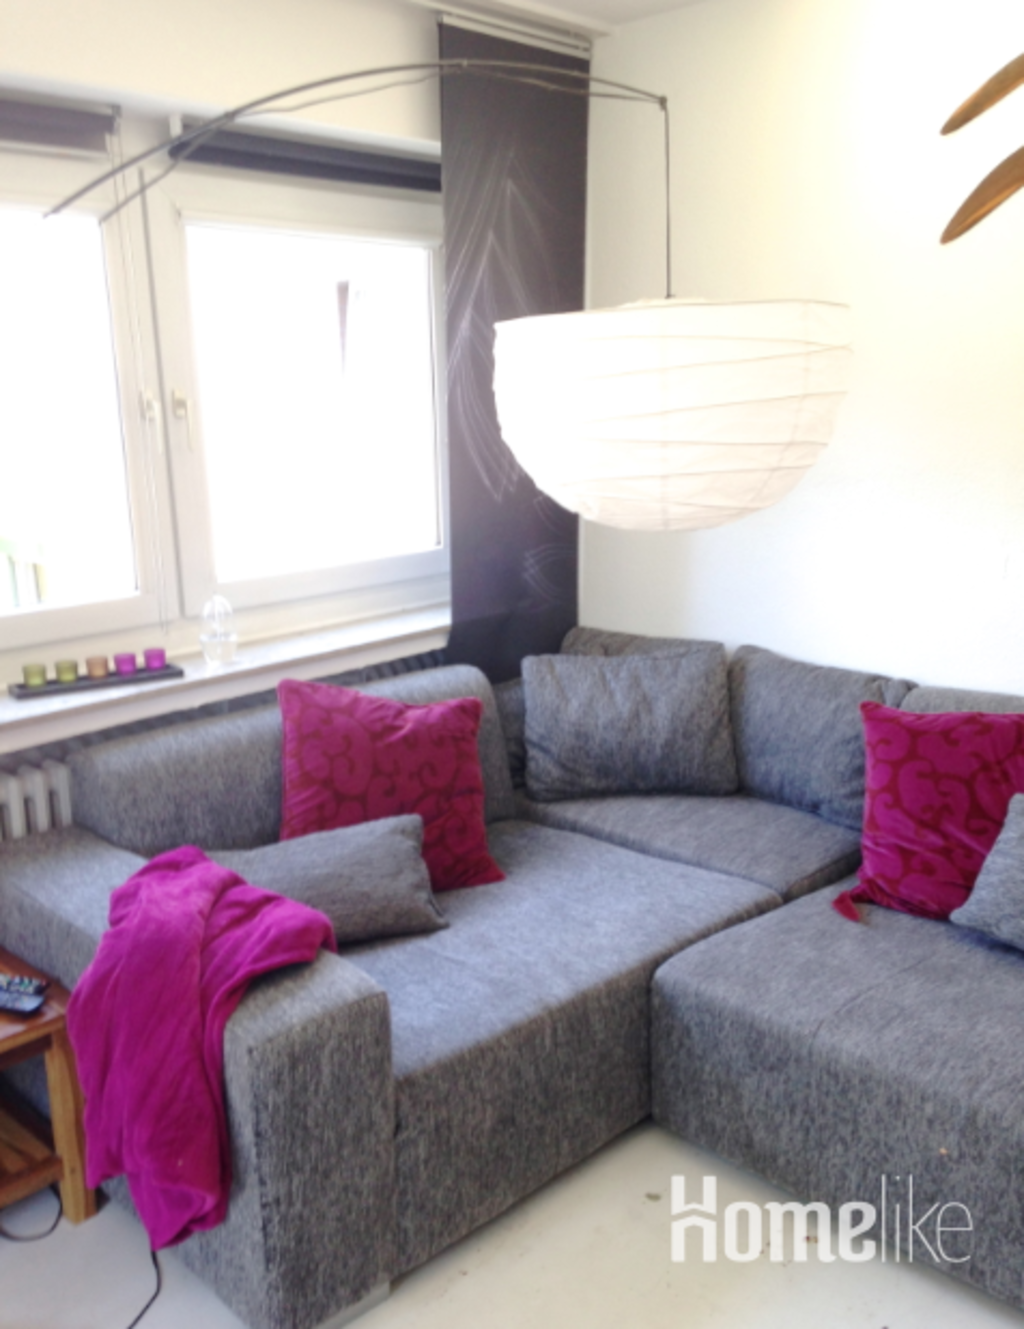 image 3 furnished 2 bedroom Apartment for rent in Bonn, Bonn